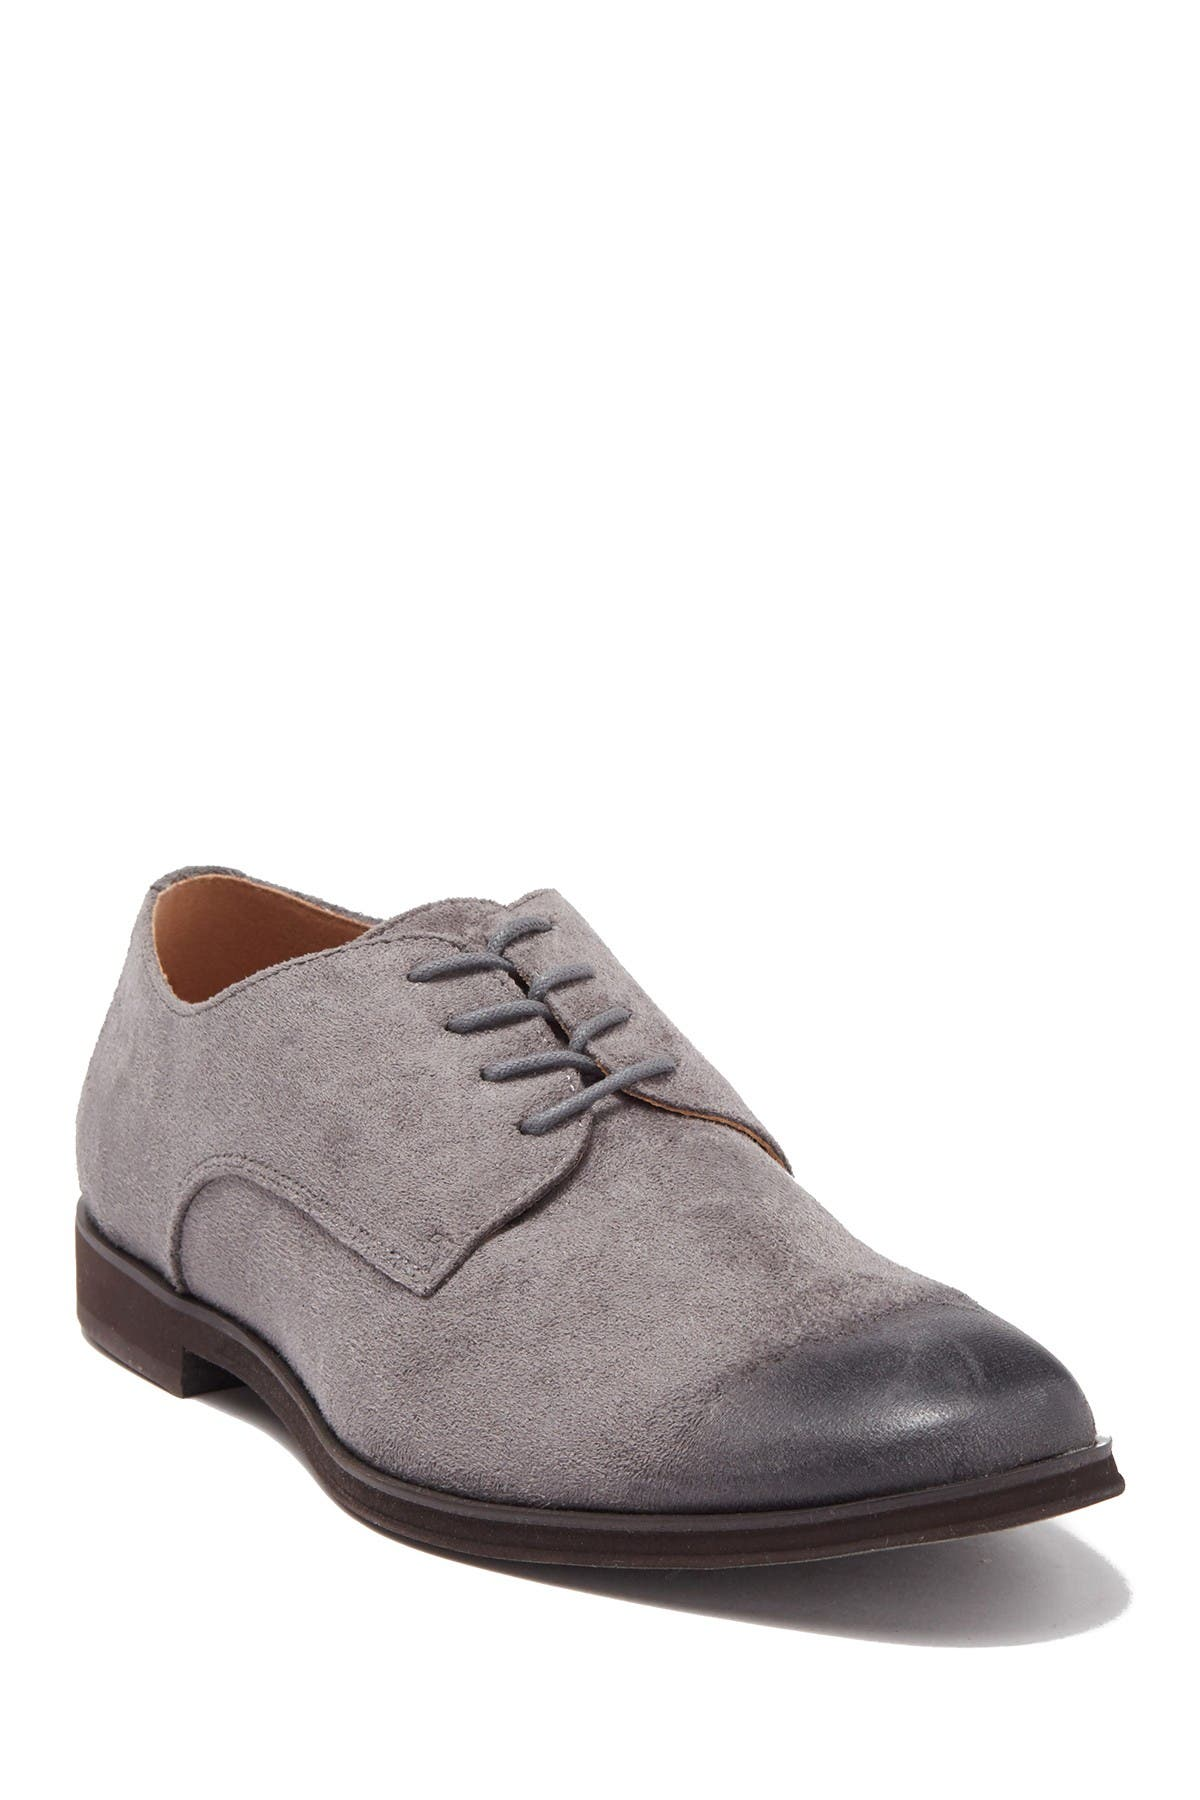 Image of Madden Viktor Cap Toe Derby